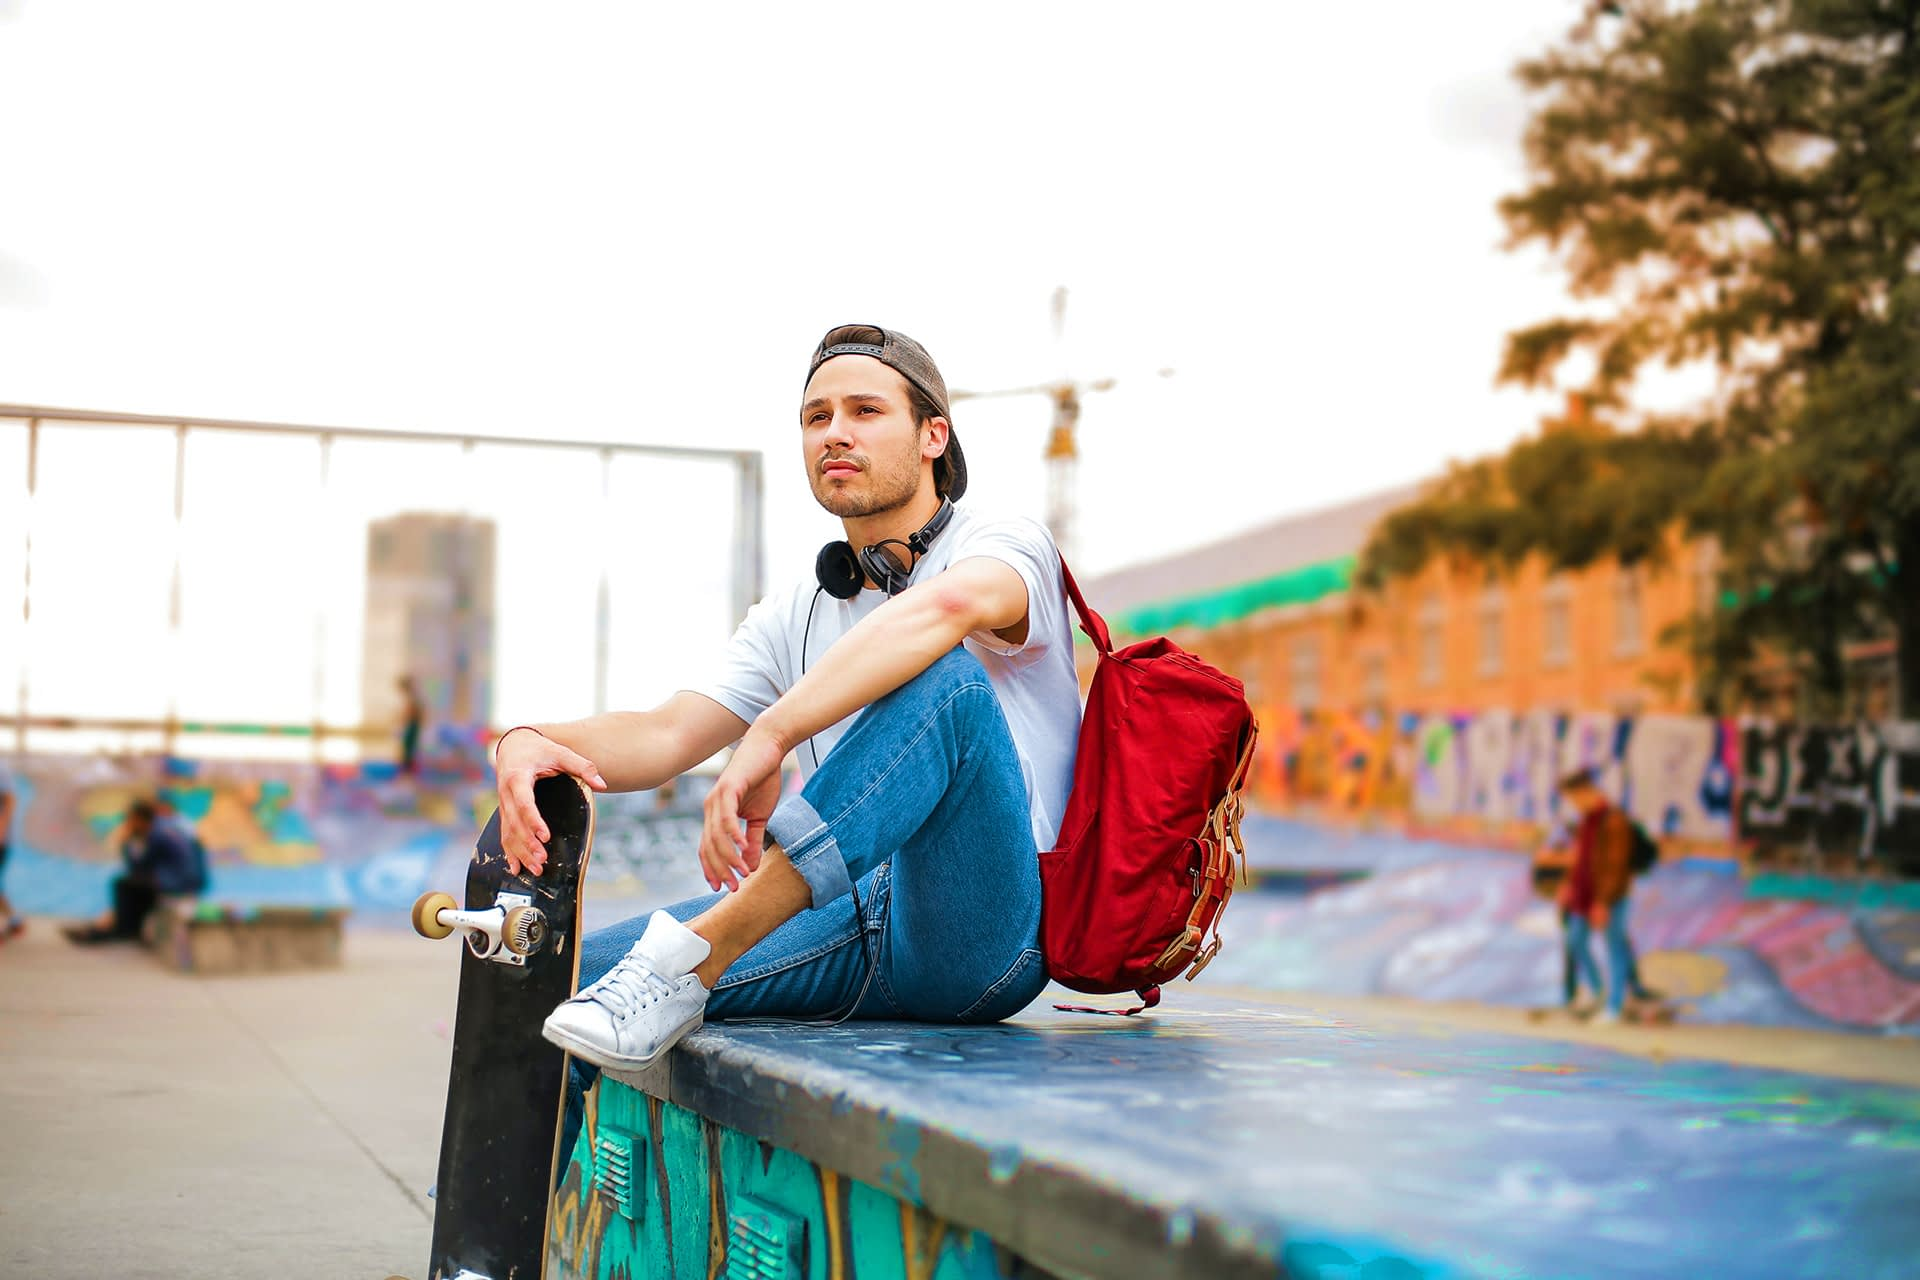 A young male skater with backpack sitting on ramp.